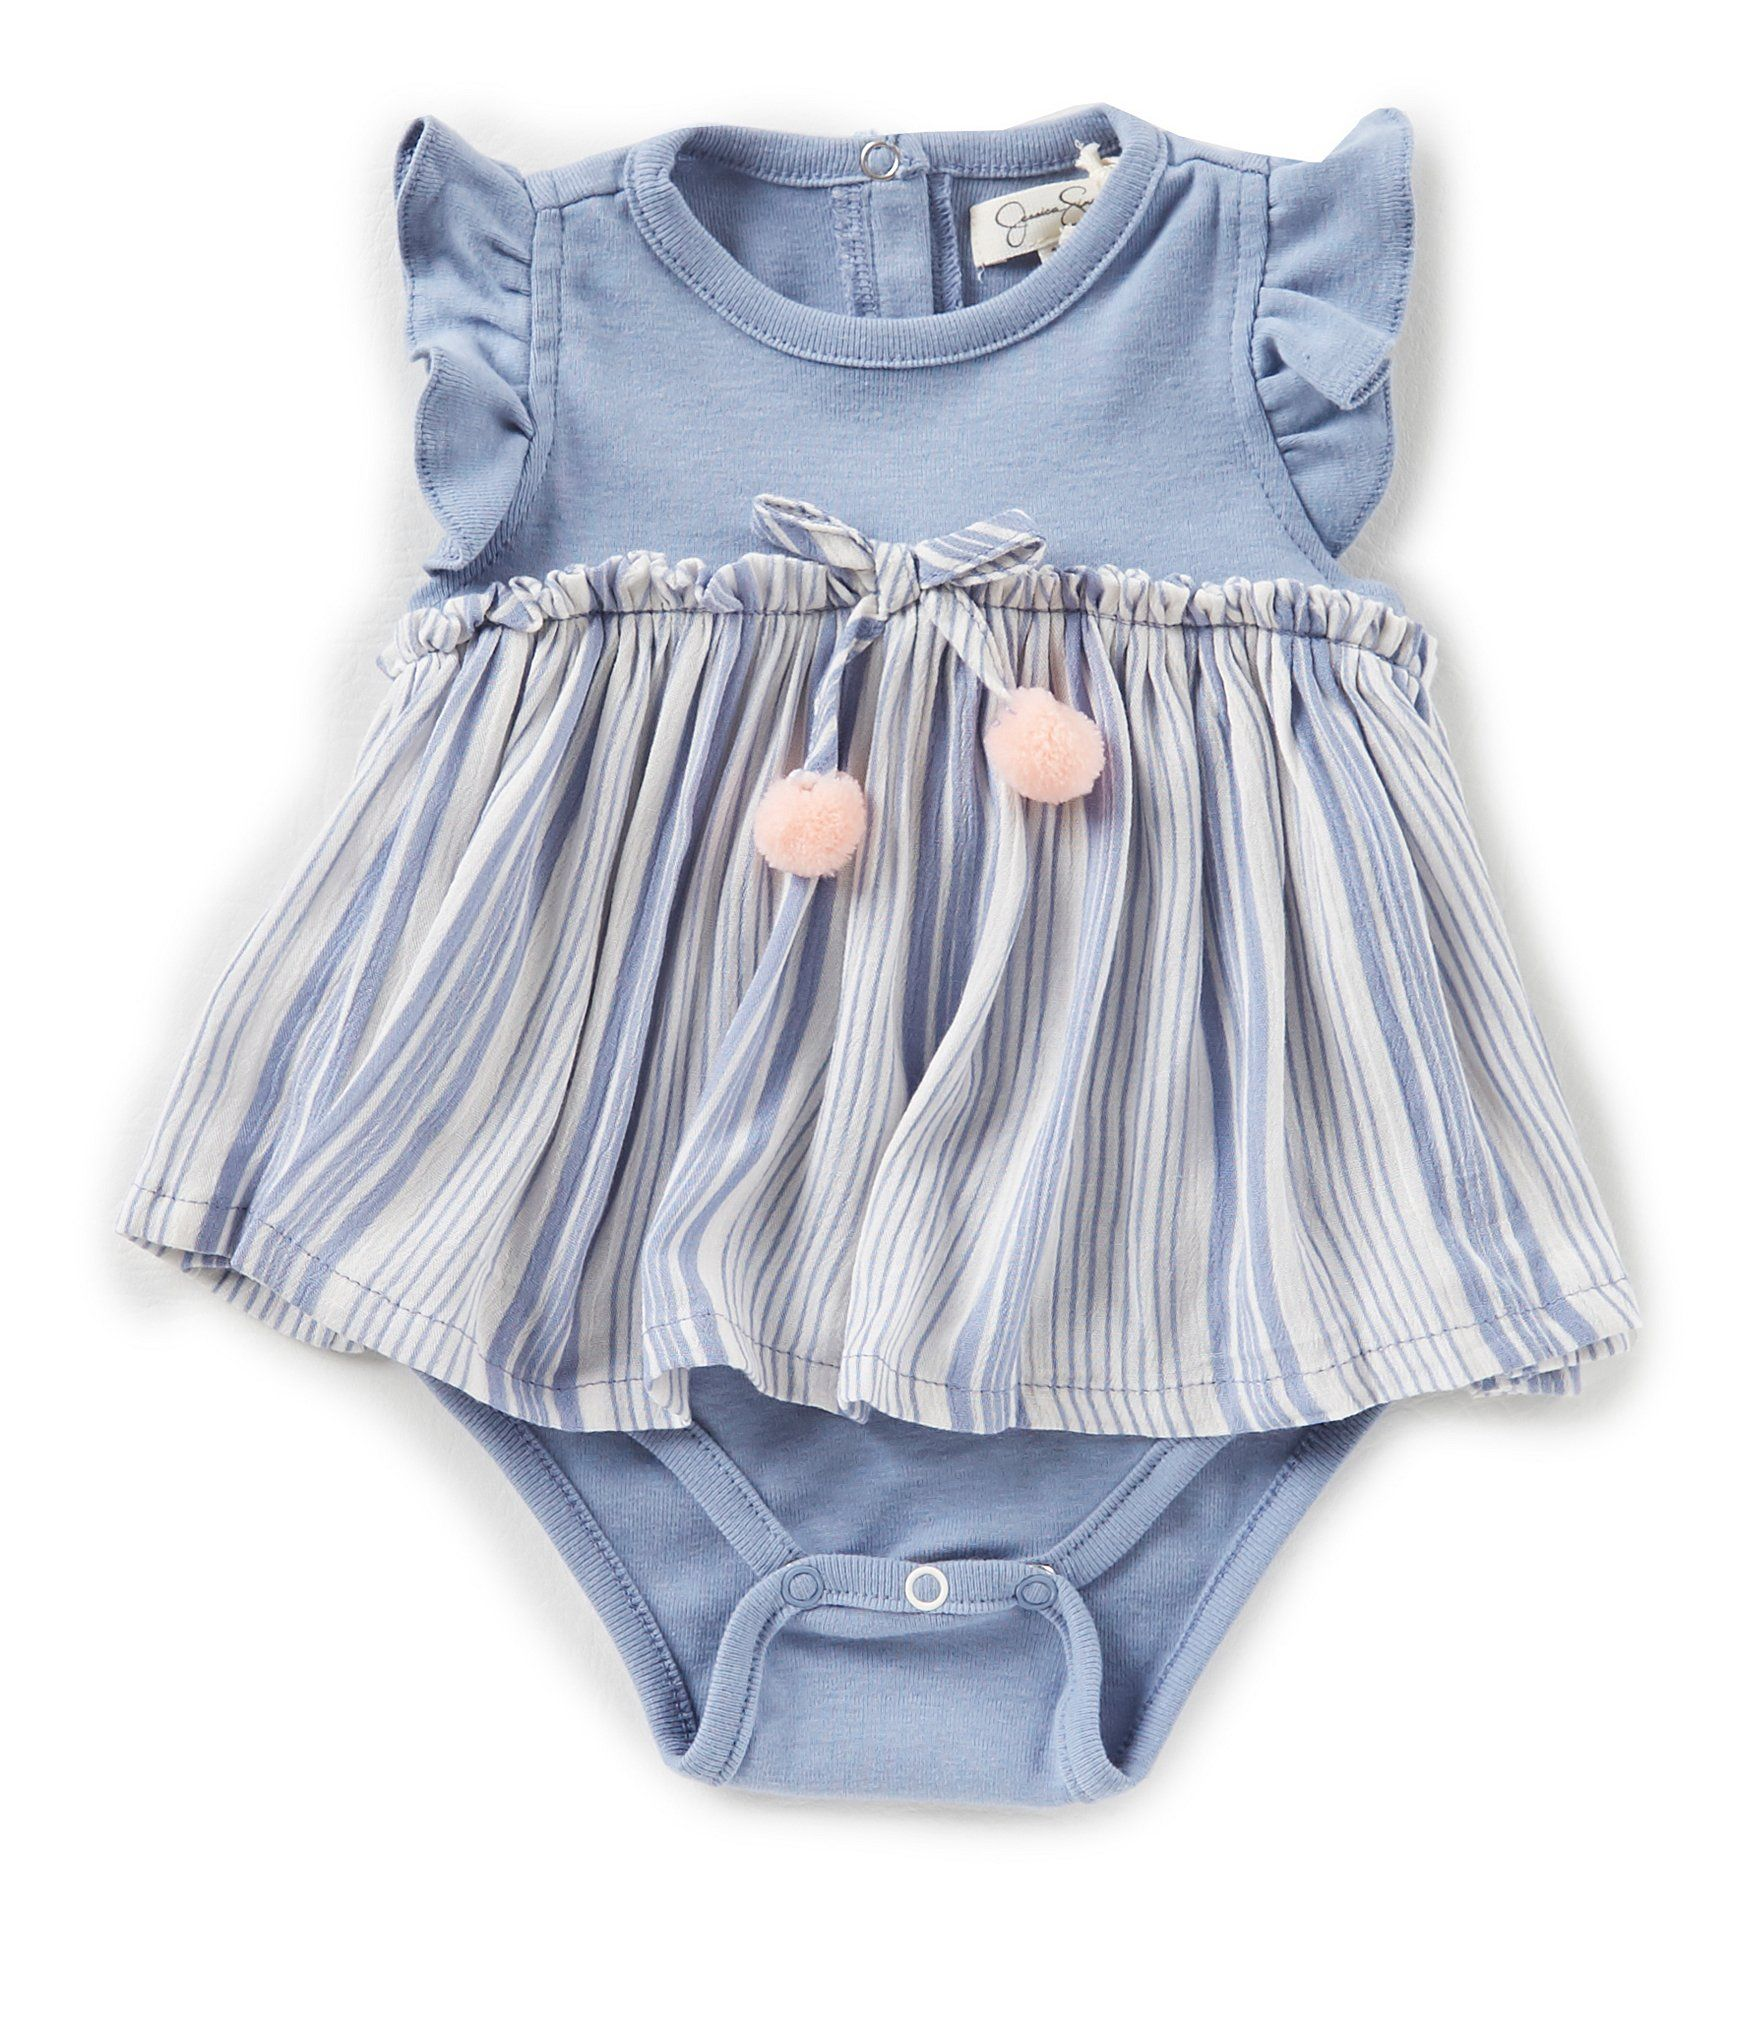 Shop for Jessica Simpson Baby Girls Newborn 9 Months Striped Skirted